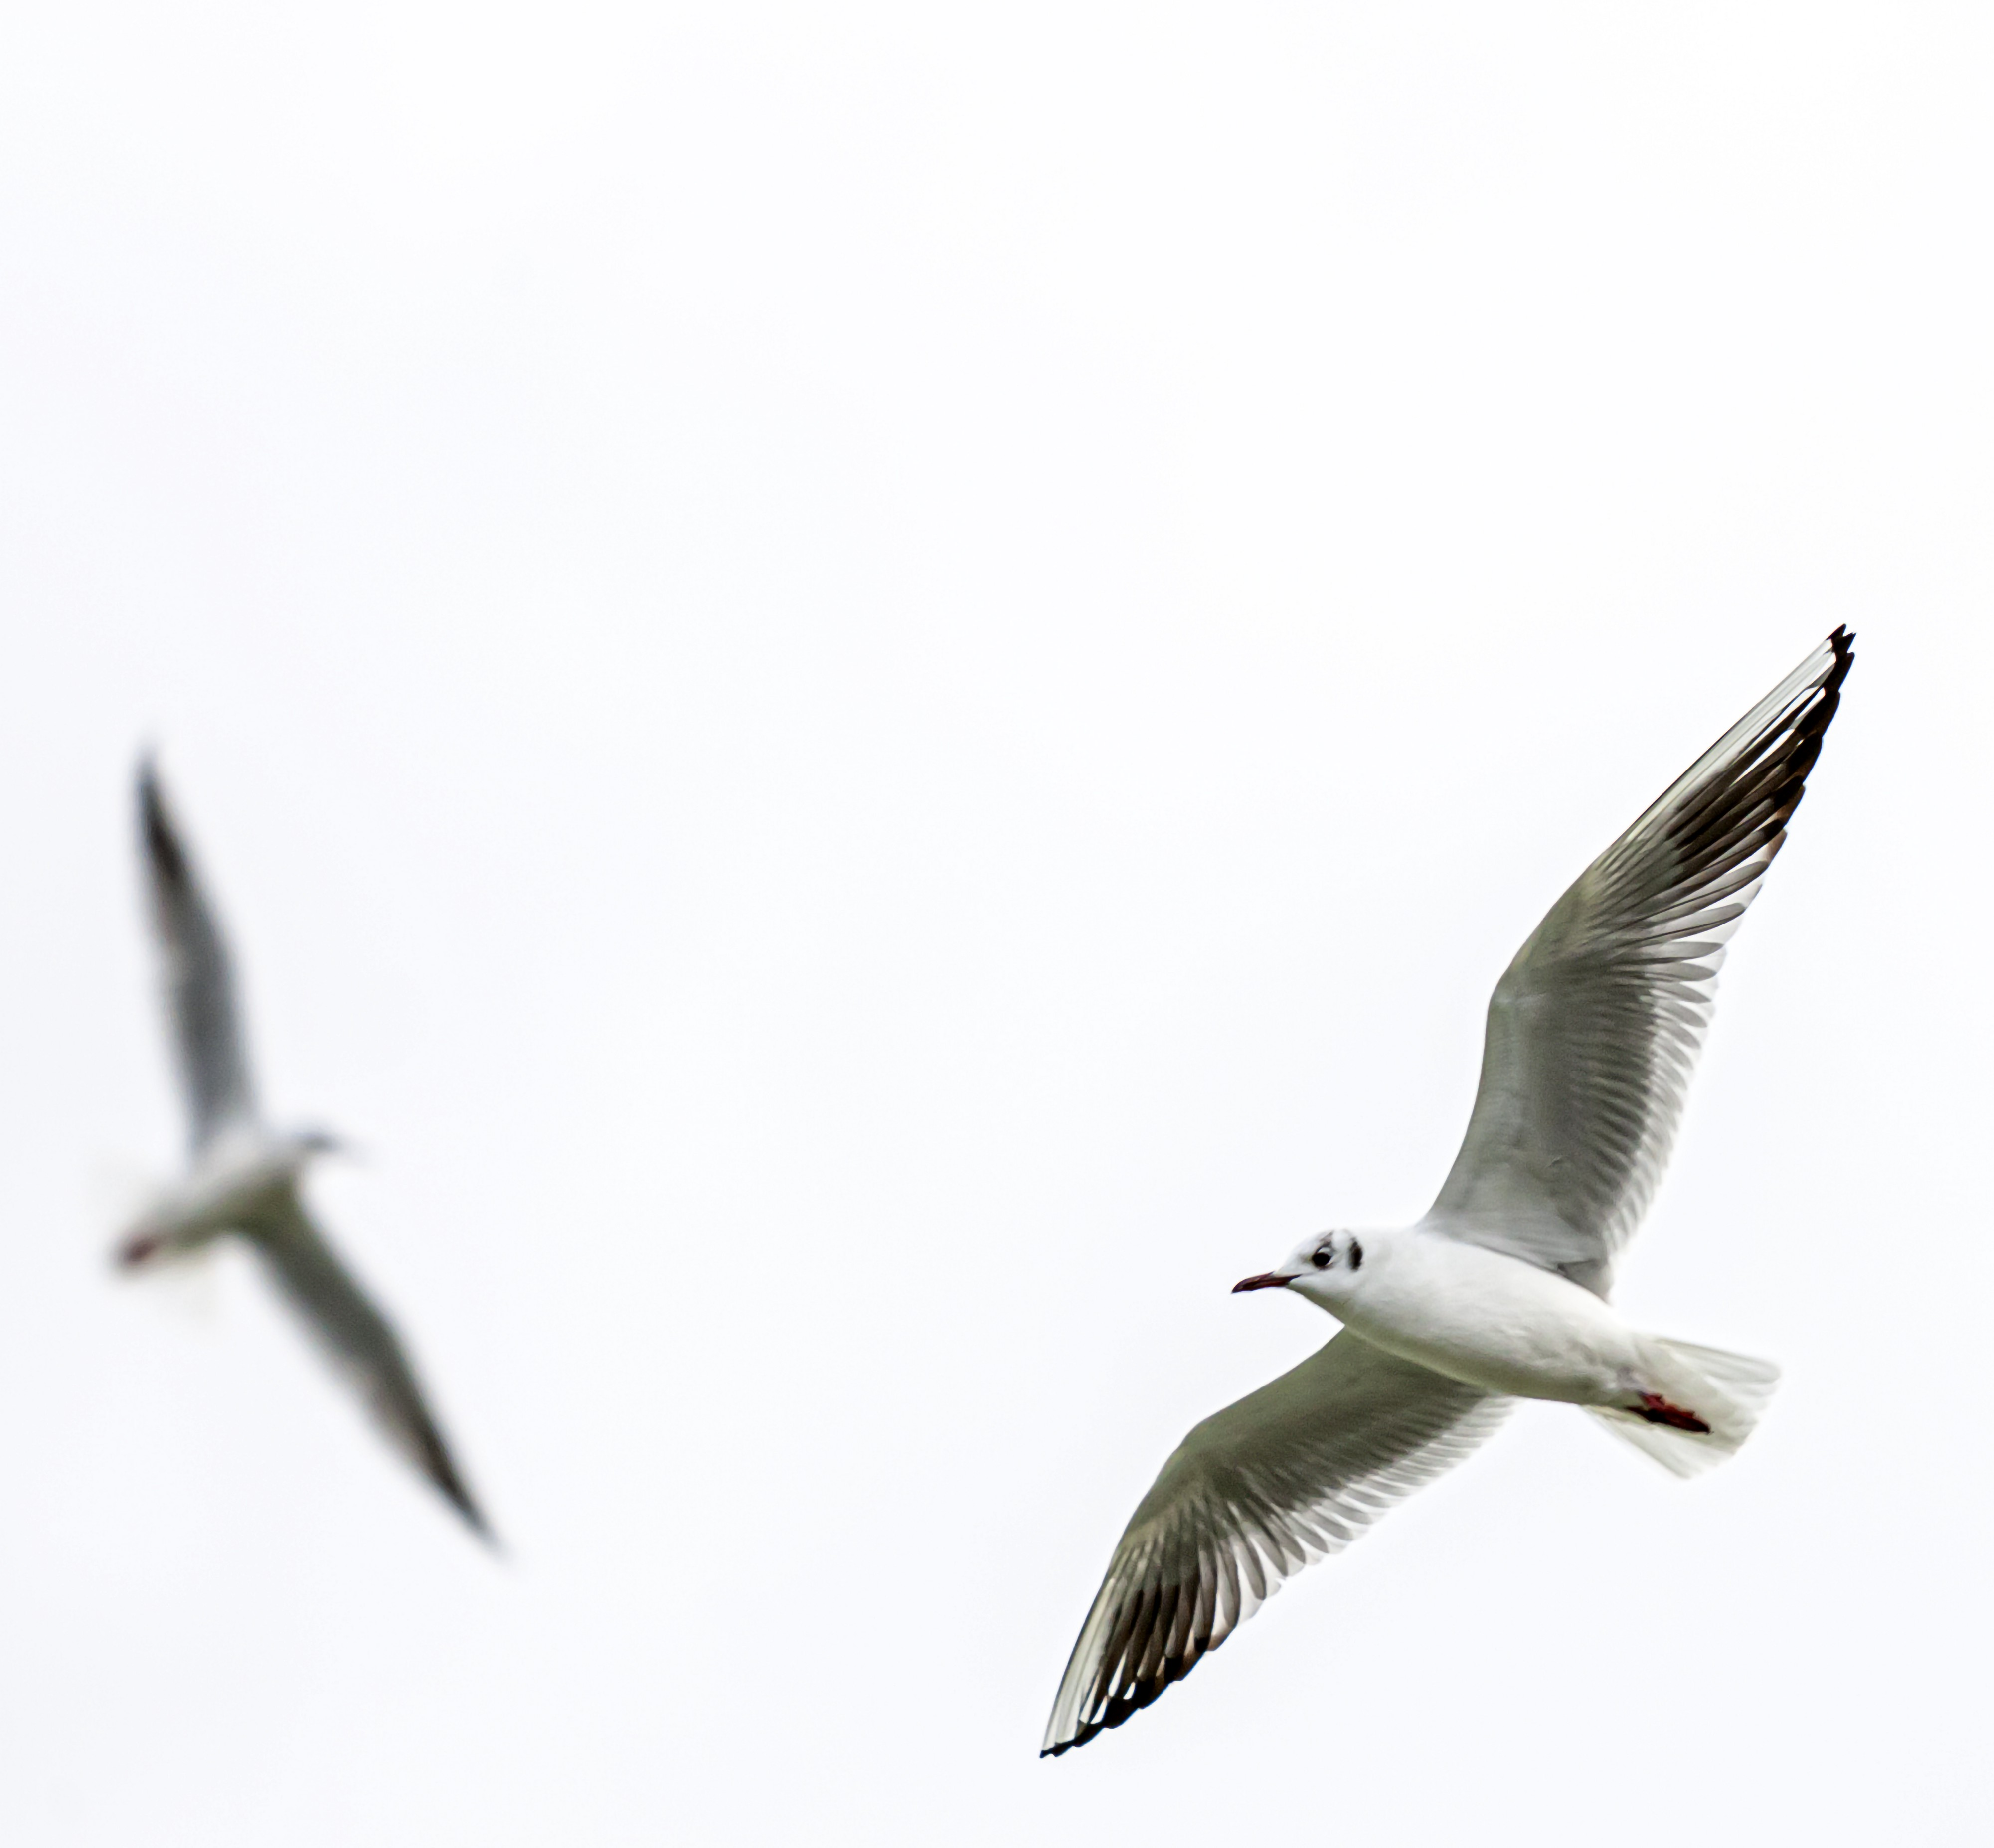 Two seagulls flying in circles in the air. One of them in the foreground, and the other is blurry in the background.